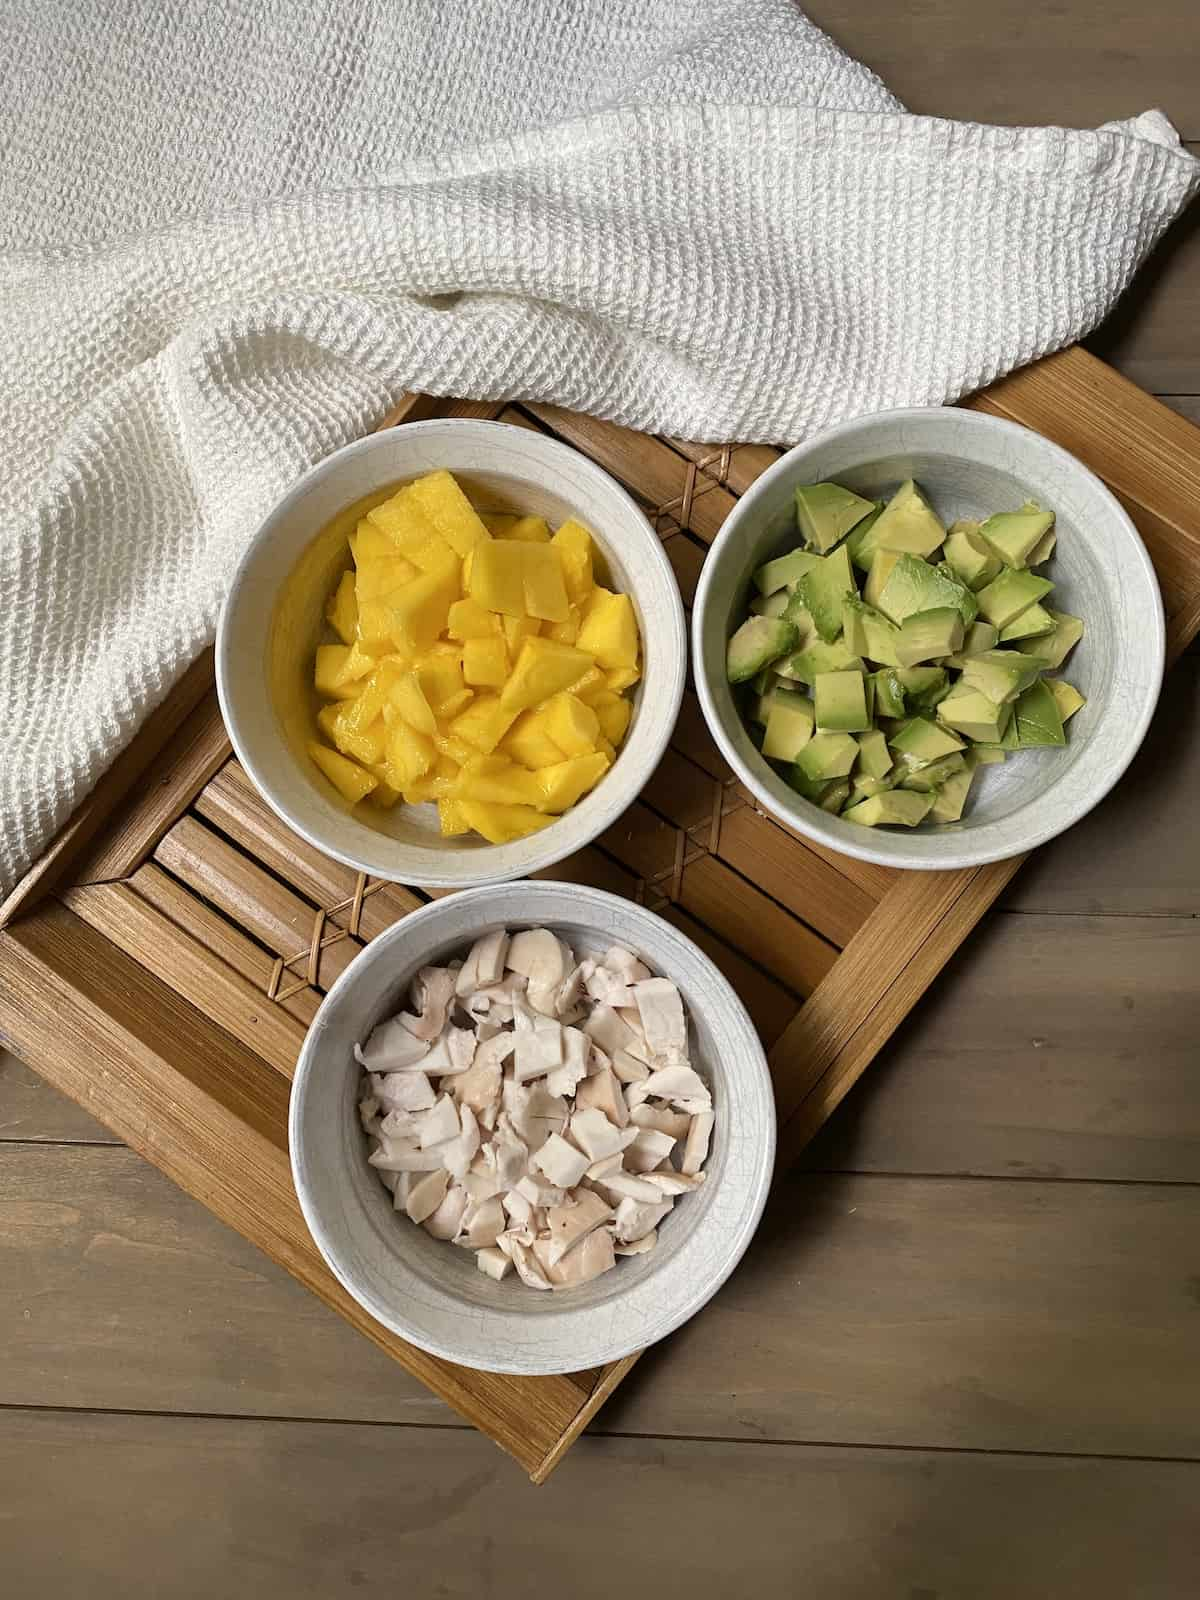 Mango, avocado, and young coconut in white dishes on a bamboo tray.